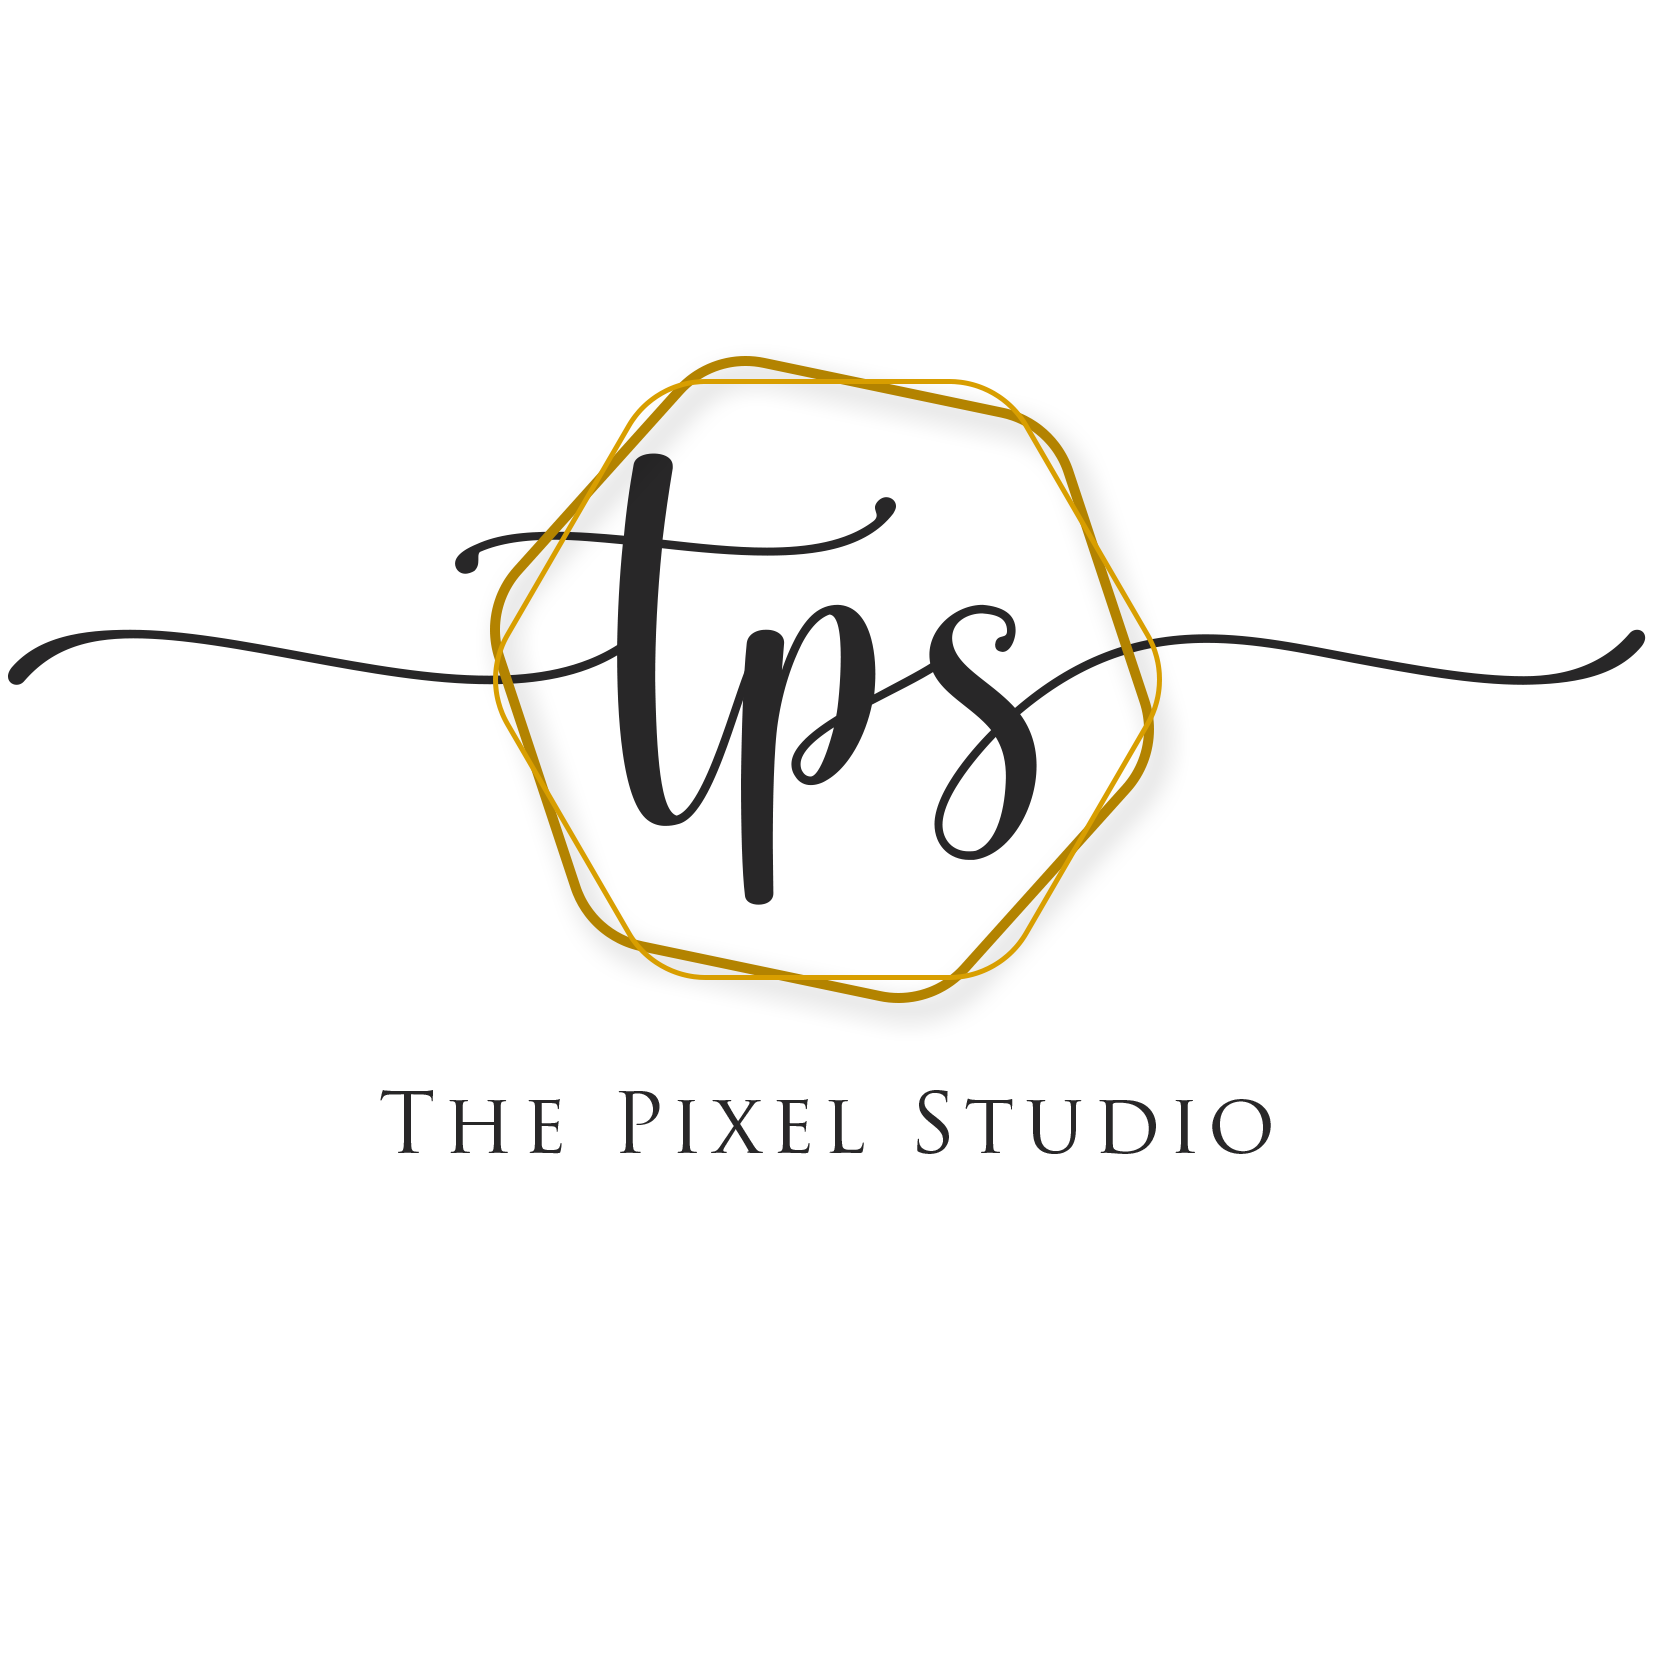 The Pixel Studio